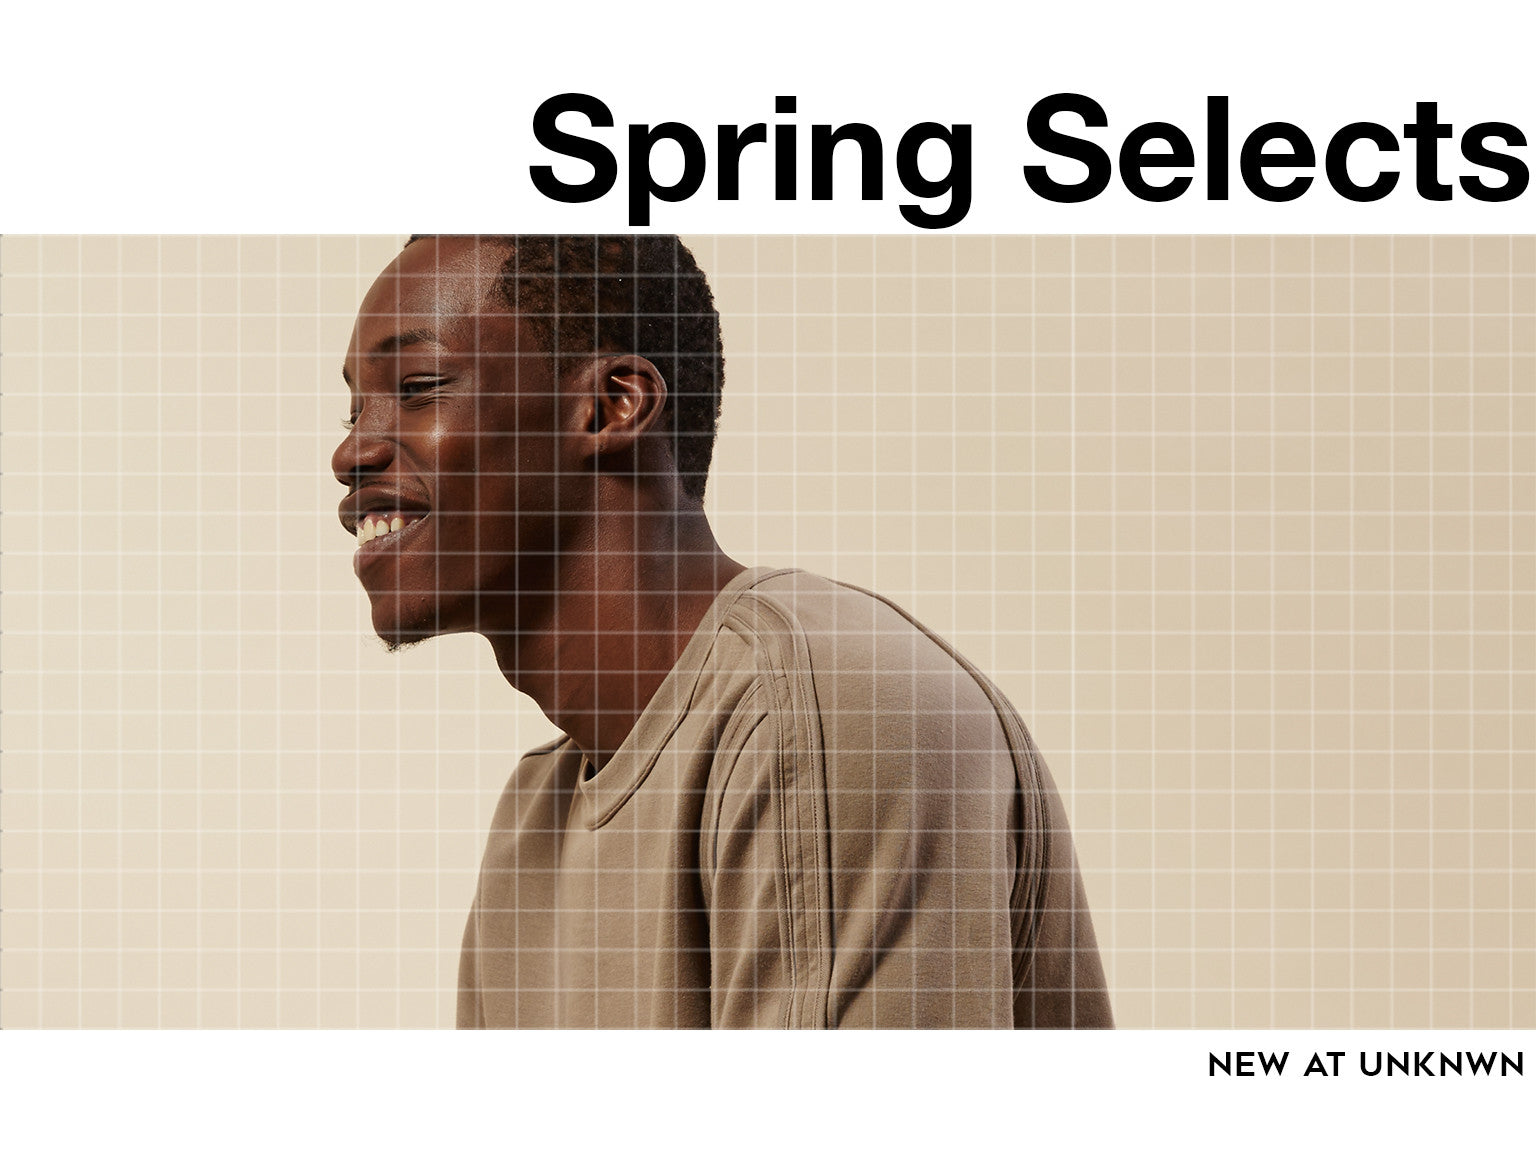 UNKNWN Presents Spring Selects